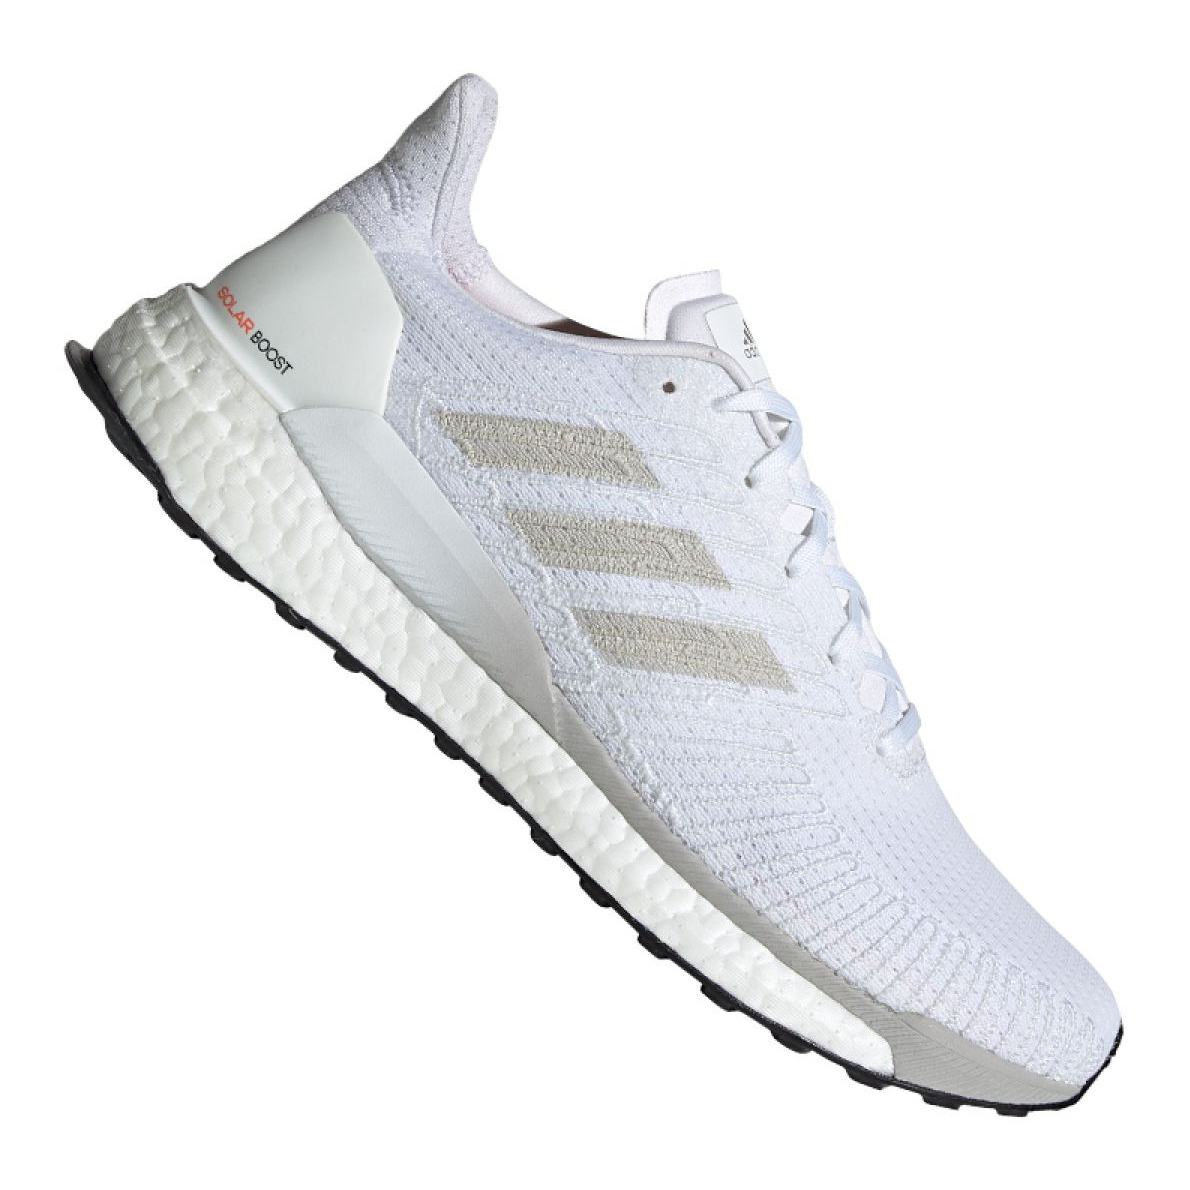 online store new arrival a few days away Details about Running shoes adidas Solar Boost 19 M G28058 white